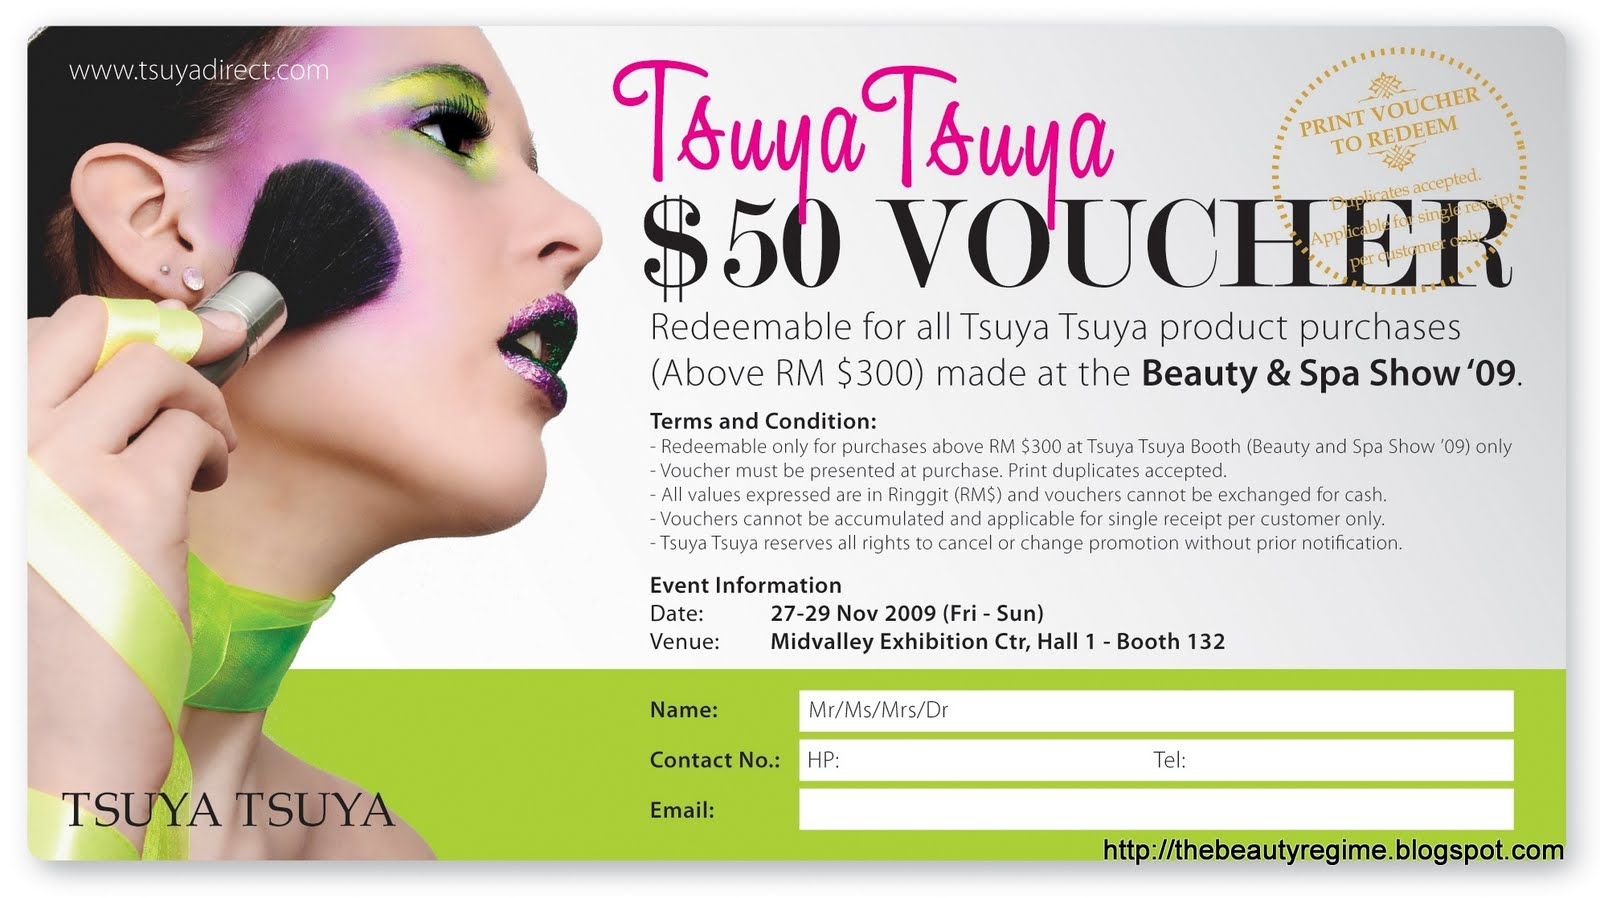 The Beauty Regime TsuyaTsuya MakeUp Workshop Beauty Spa – How to Make Vouchers